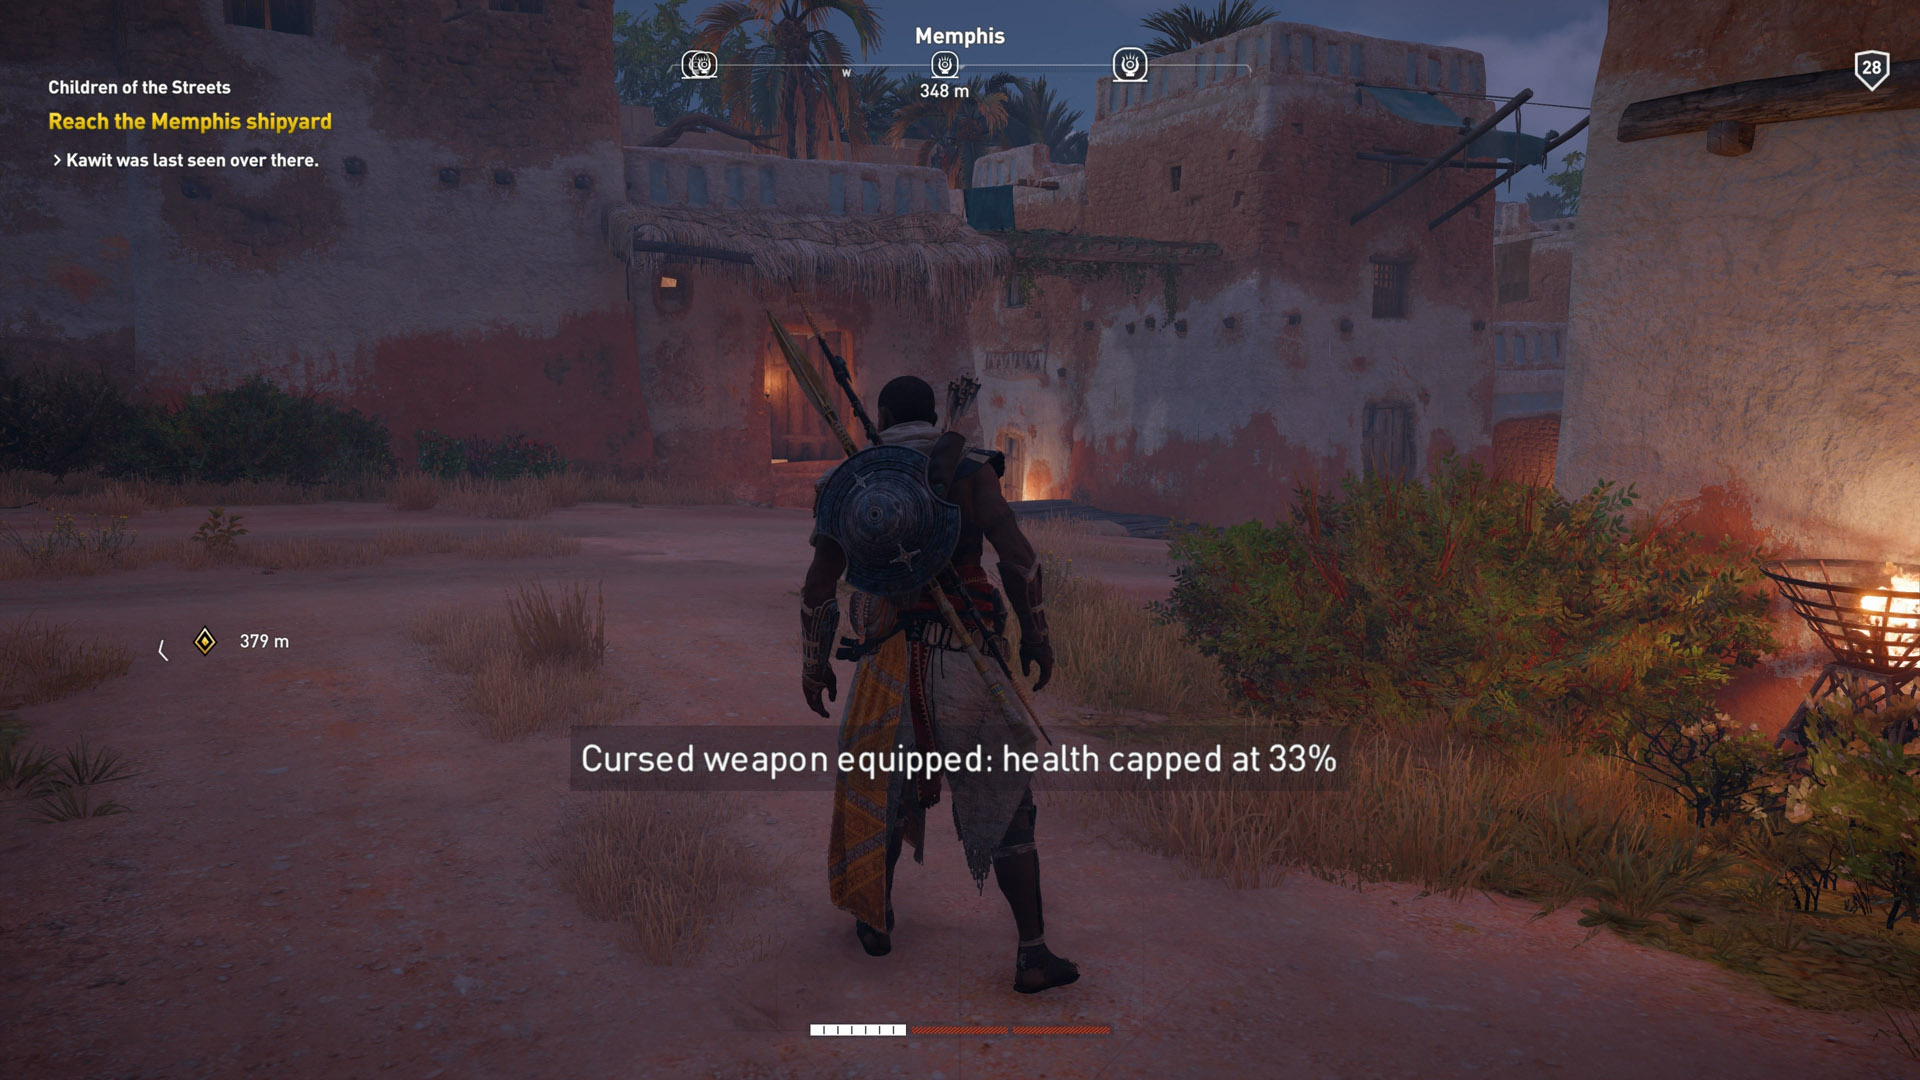 Cursed Weapons in Assassin's Creed Origins